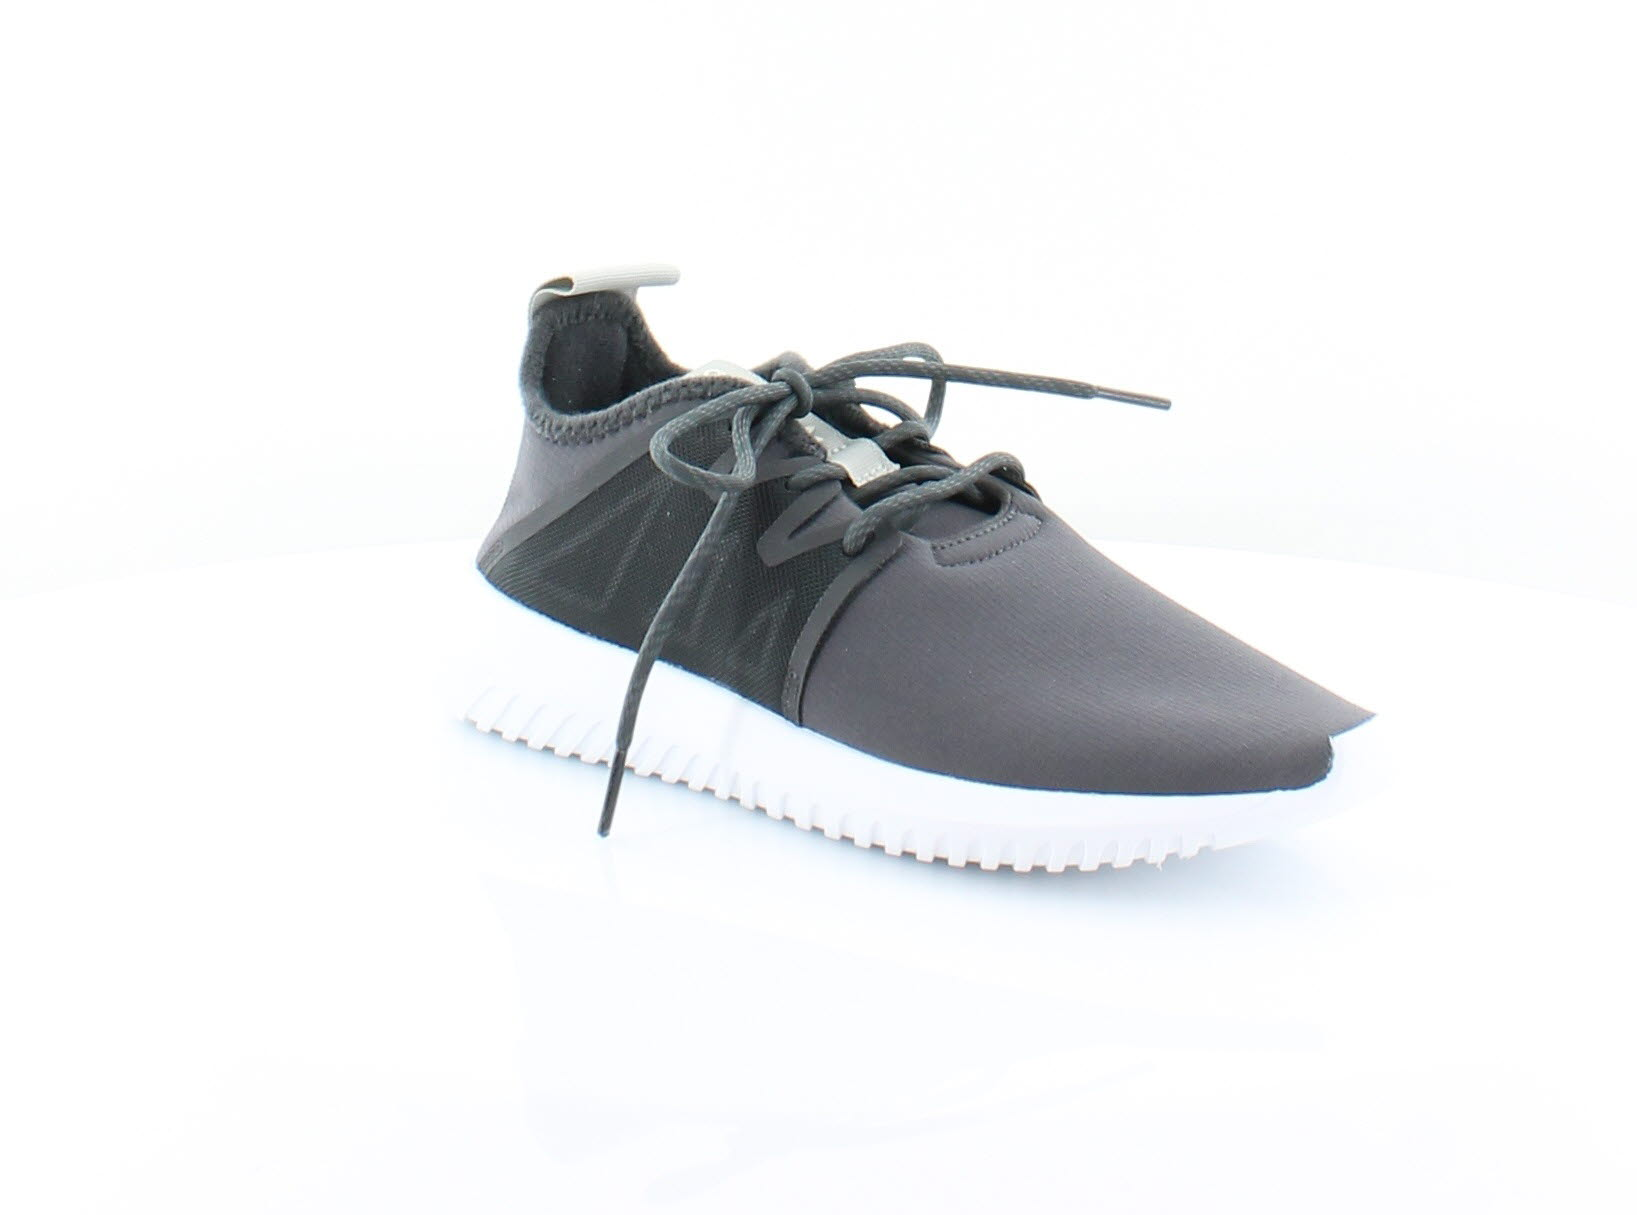 56d7c5a2 Adidas Tubular Viral2 Gray Womens Shoes Size 10.5 M Athletic MSRP $100